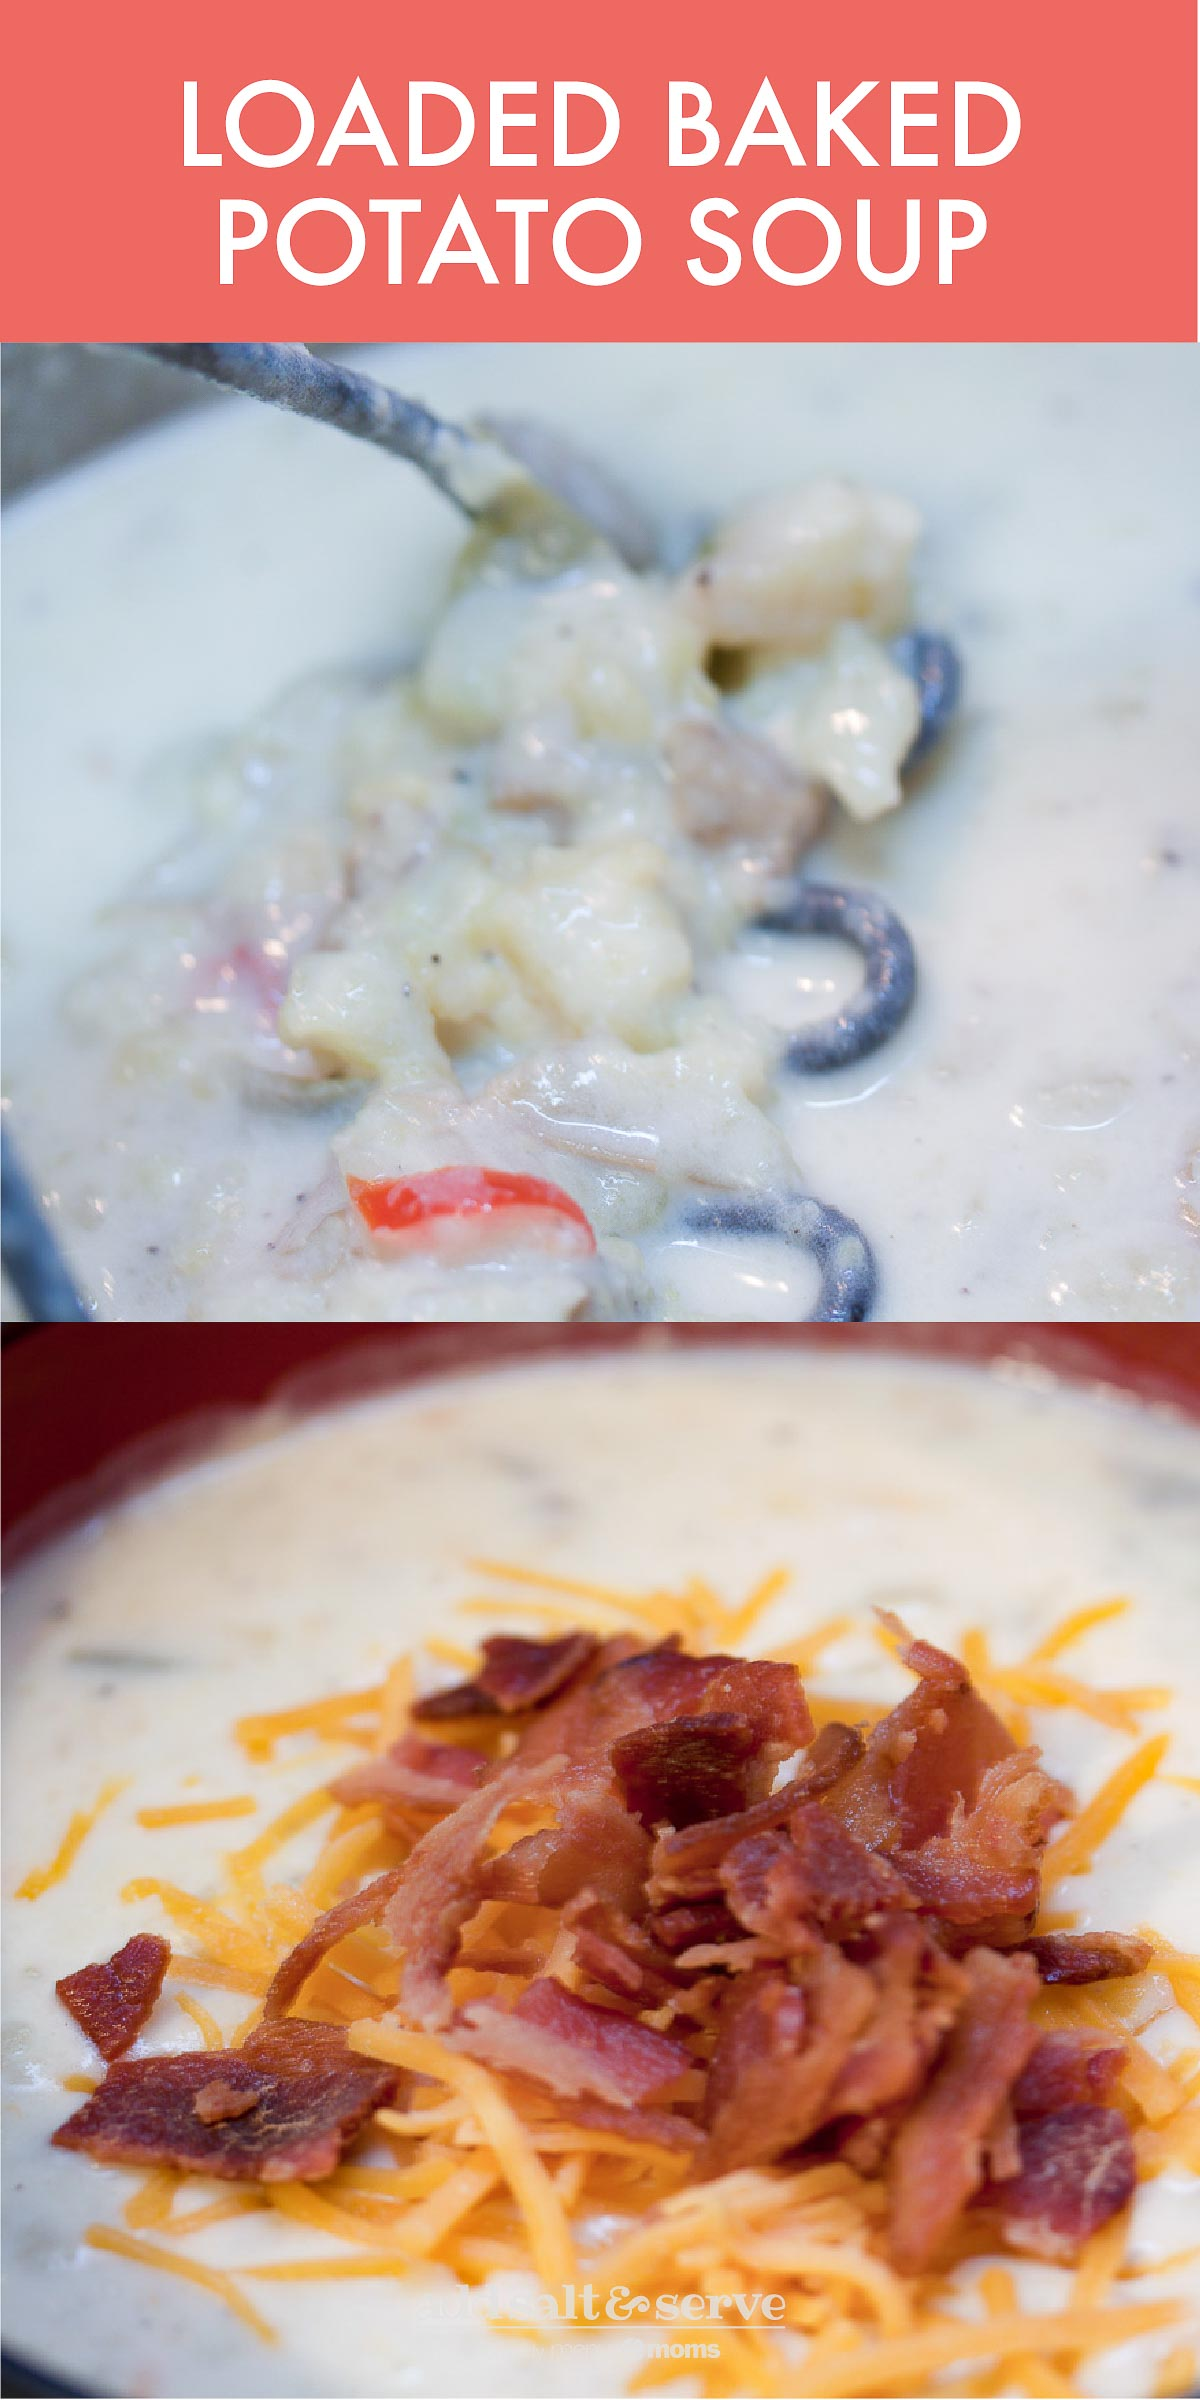 Composite image: Top photo is a potato masher in a bowl of baked potato soup. Bottom image is baked potato soup topped with shredded cheddar cheese and chopped bacon. Text: Loaded Baked Potato Soup - Add Salt & Serve logo